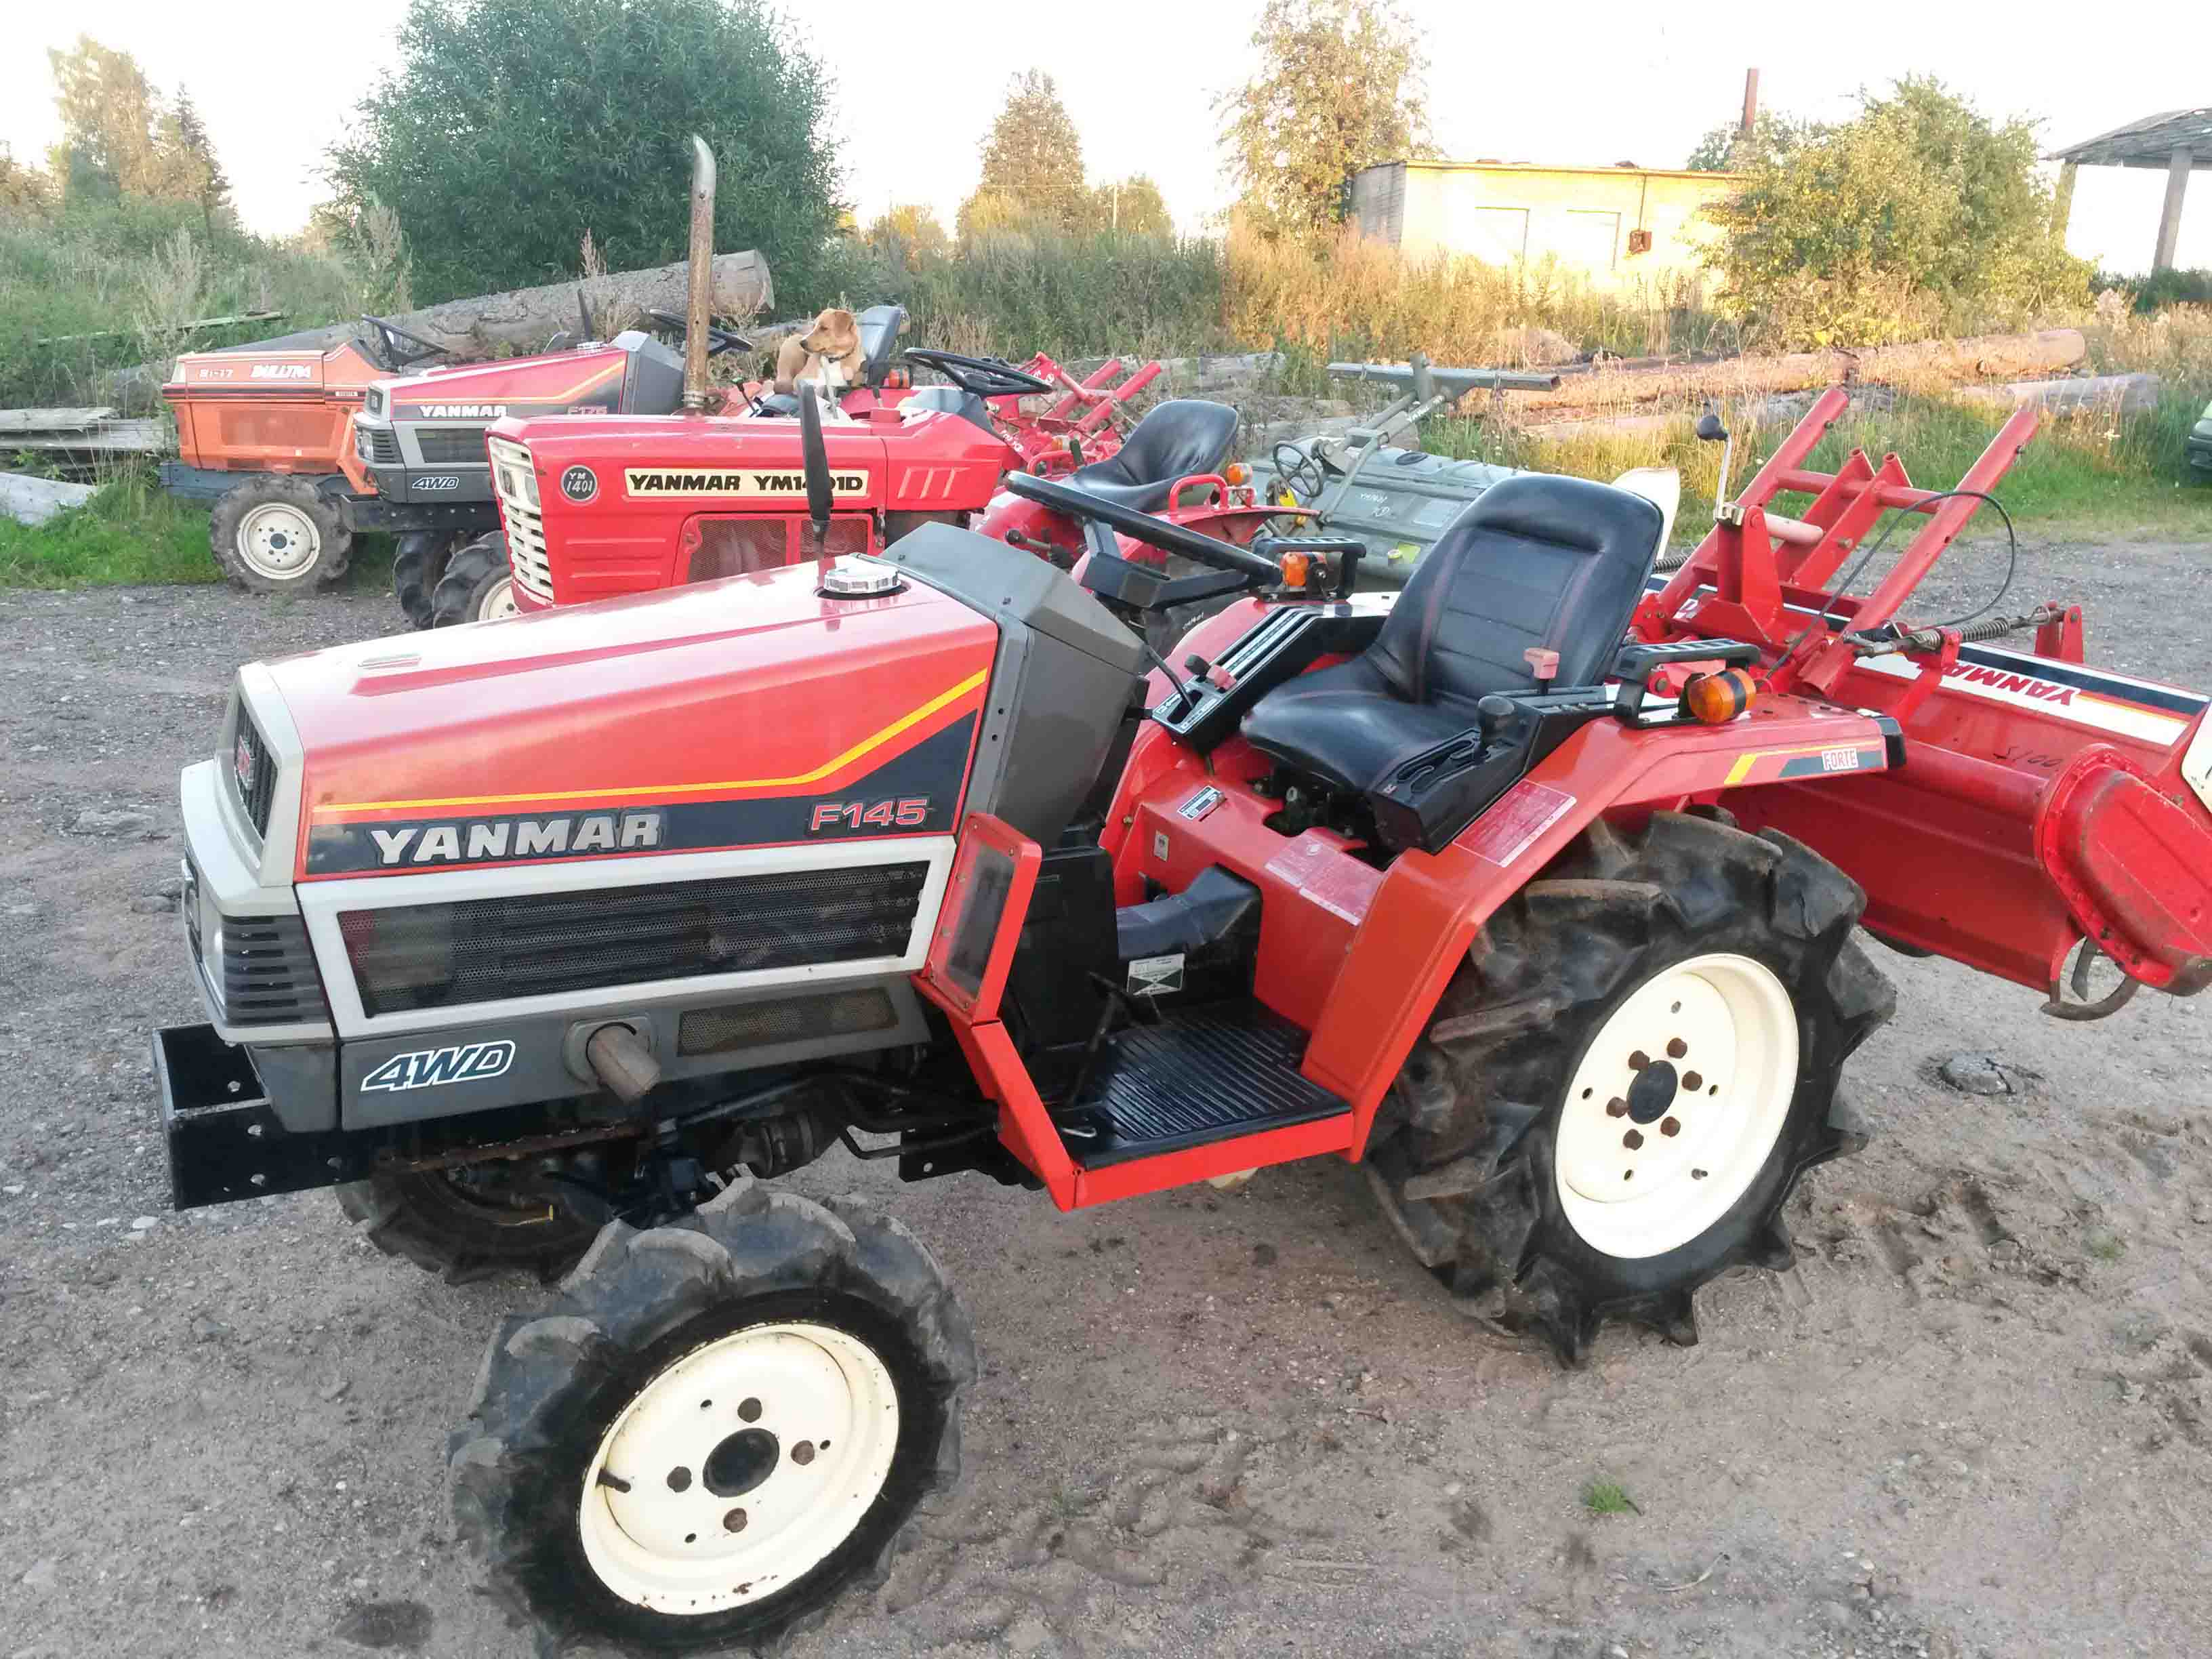 Yanmar F145 | NIPPON - compact tractors from Japan